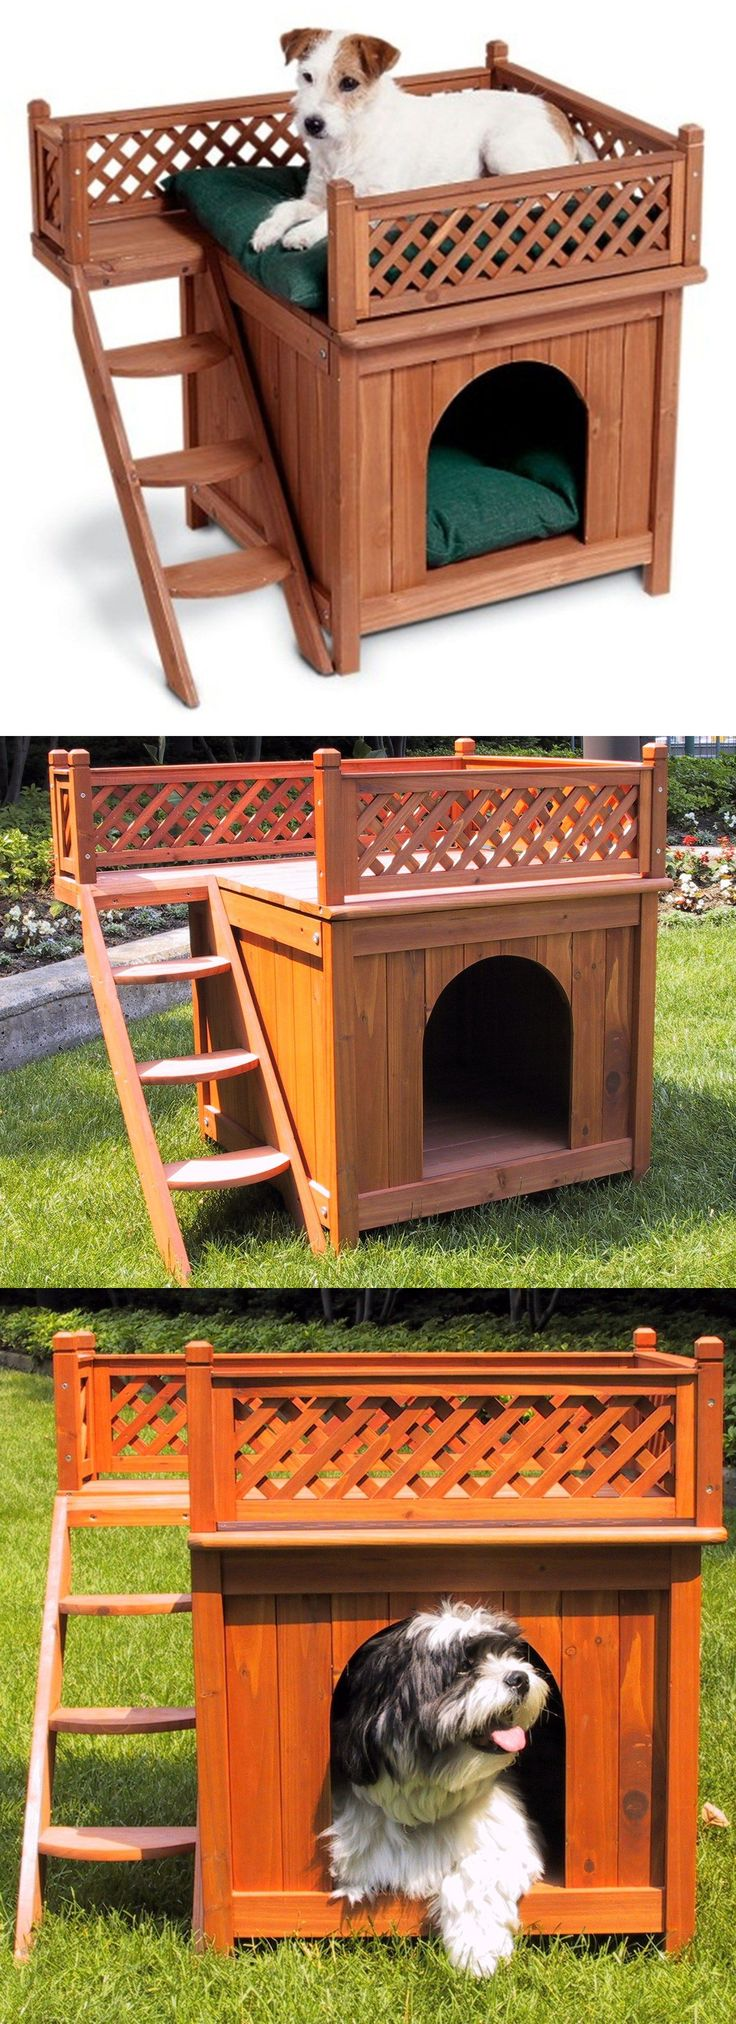 Dog Houses 108884: Wood Pet House Small Dog Cat Bed Durable Comfortable Wooden View Indoor Outdoor BUY IT NOW ONLY: $97.62